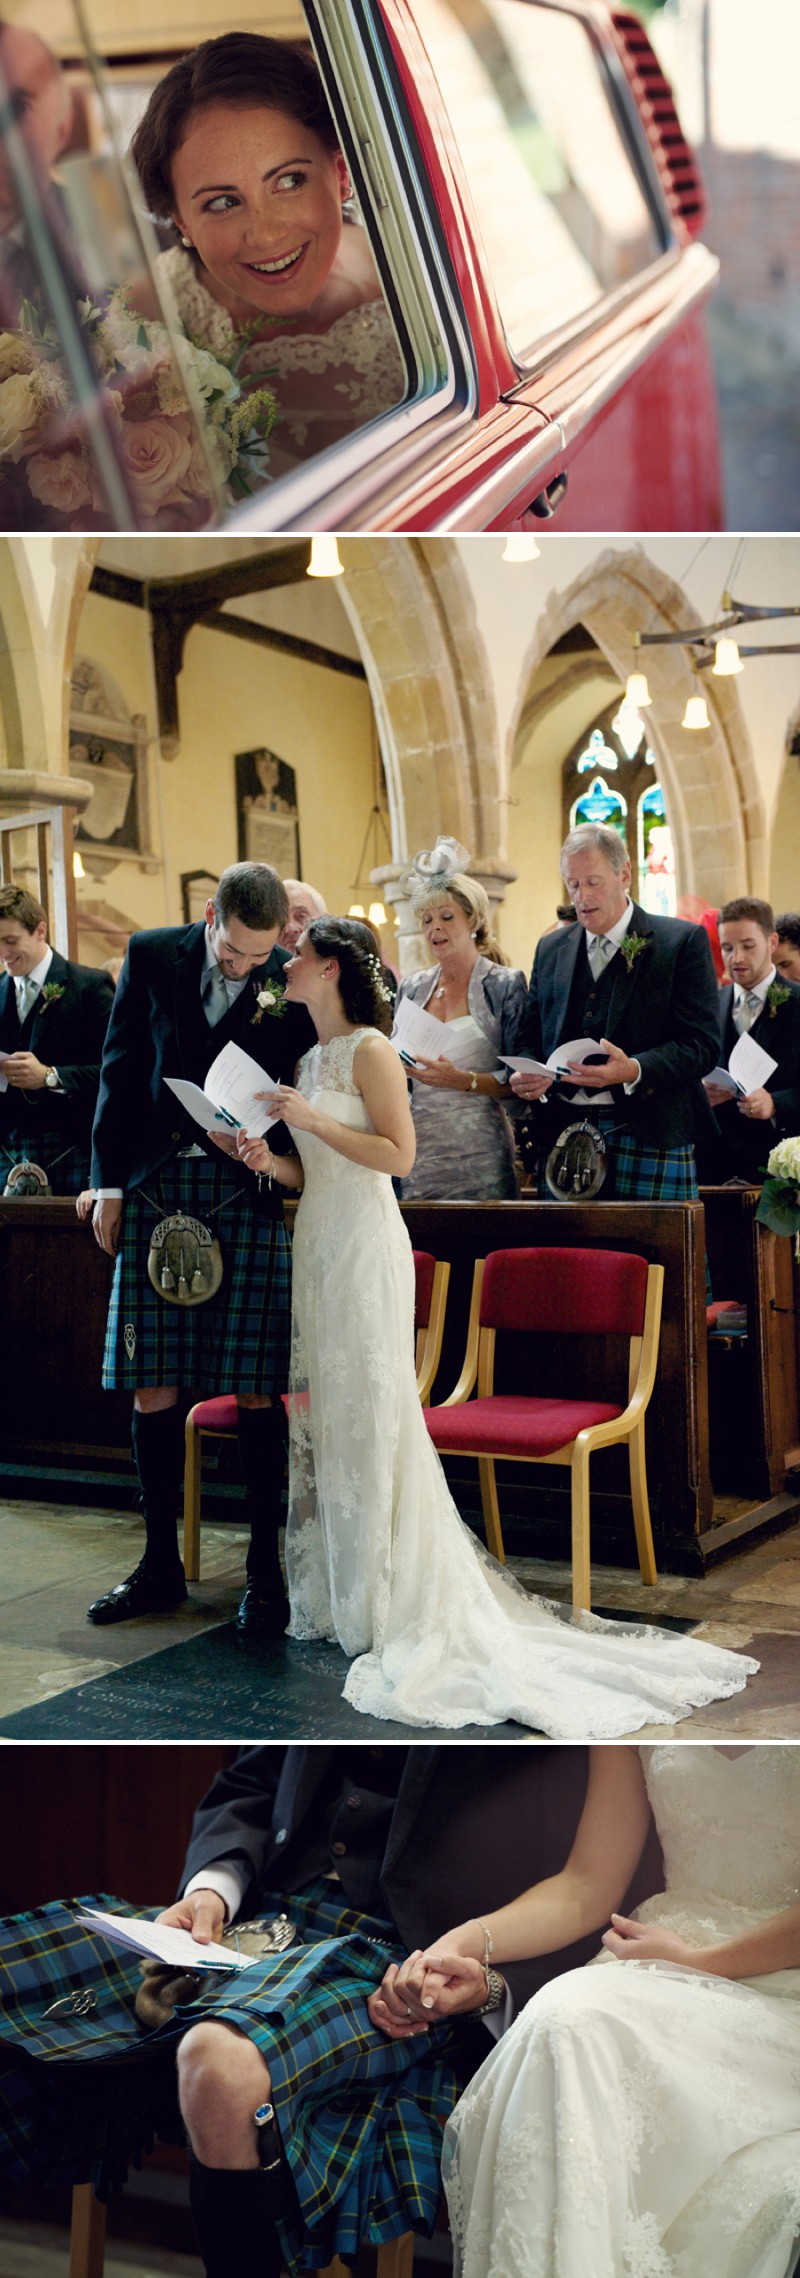 A Rustic Scottish And English Themed Woodland Wedding In